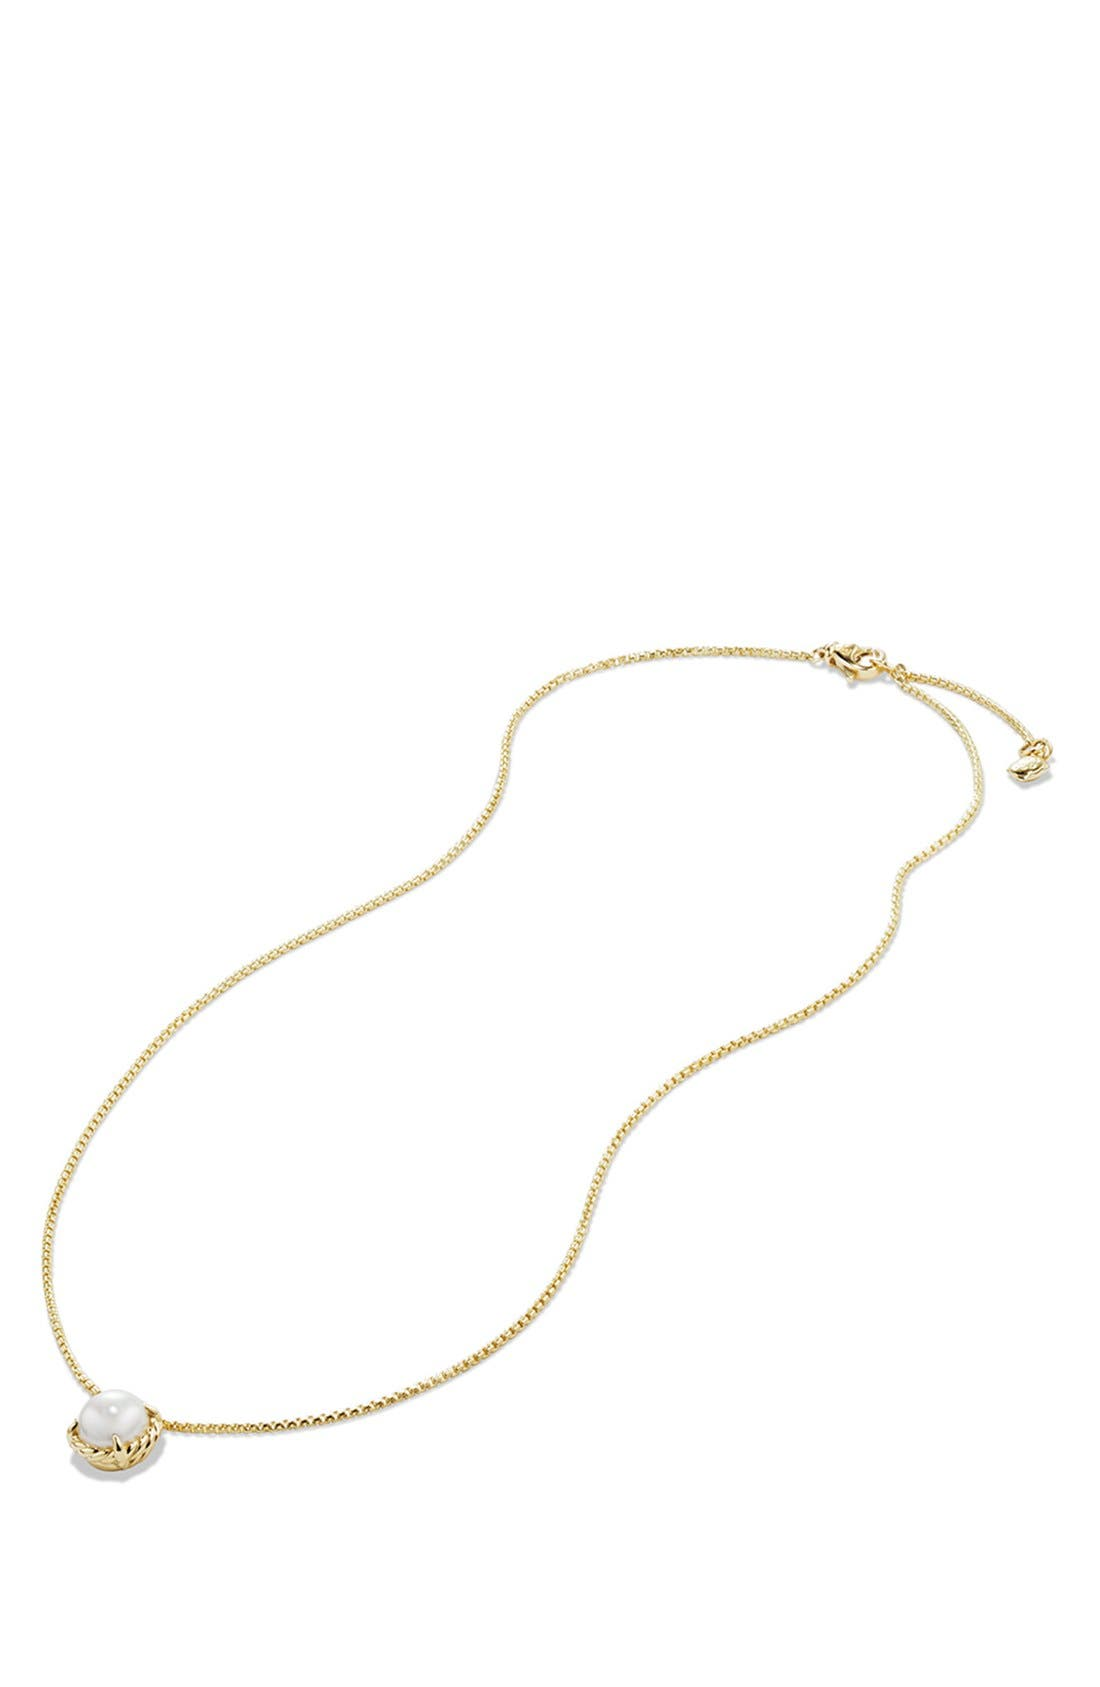 DAVID YURMAN,                             'Châtelaine' Pendant Necklace with Freshwater Pearl in 18K Gold,                             Alternate thumbnail 3, color,                             900